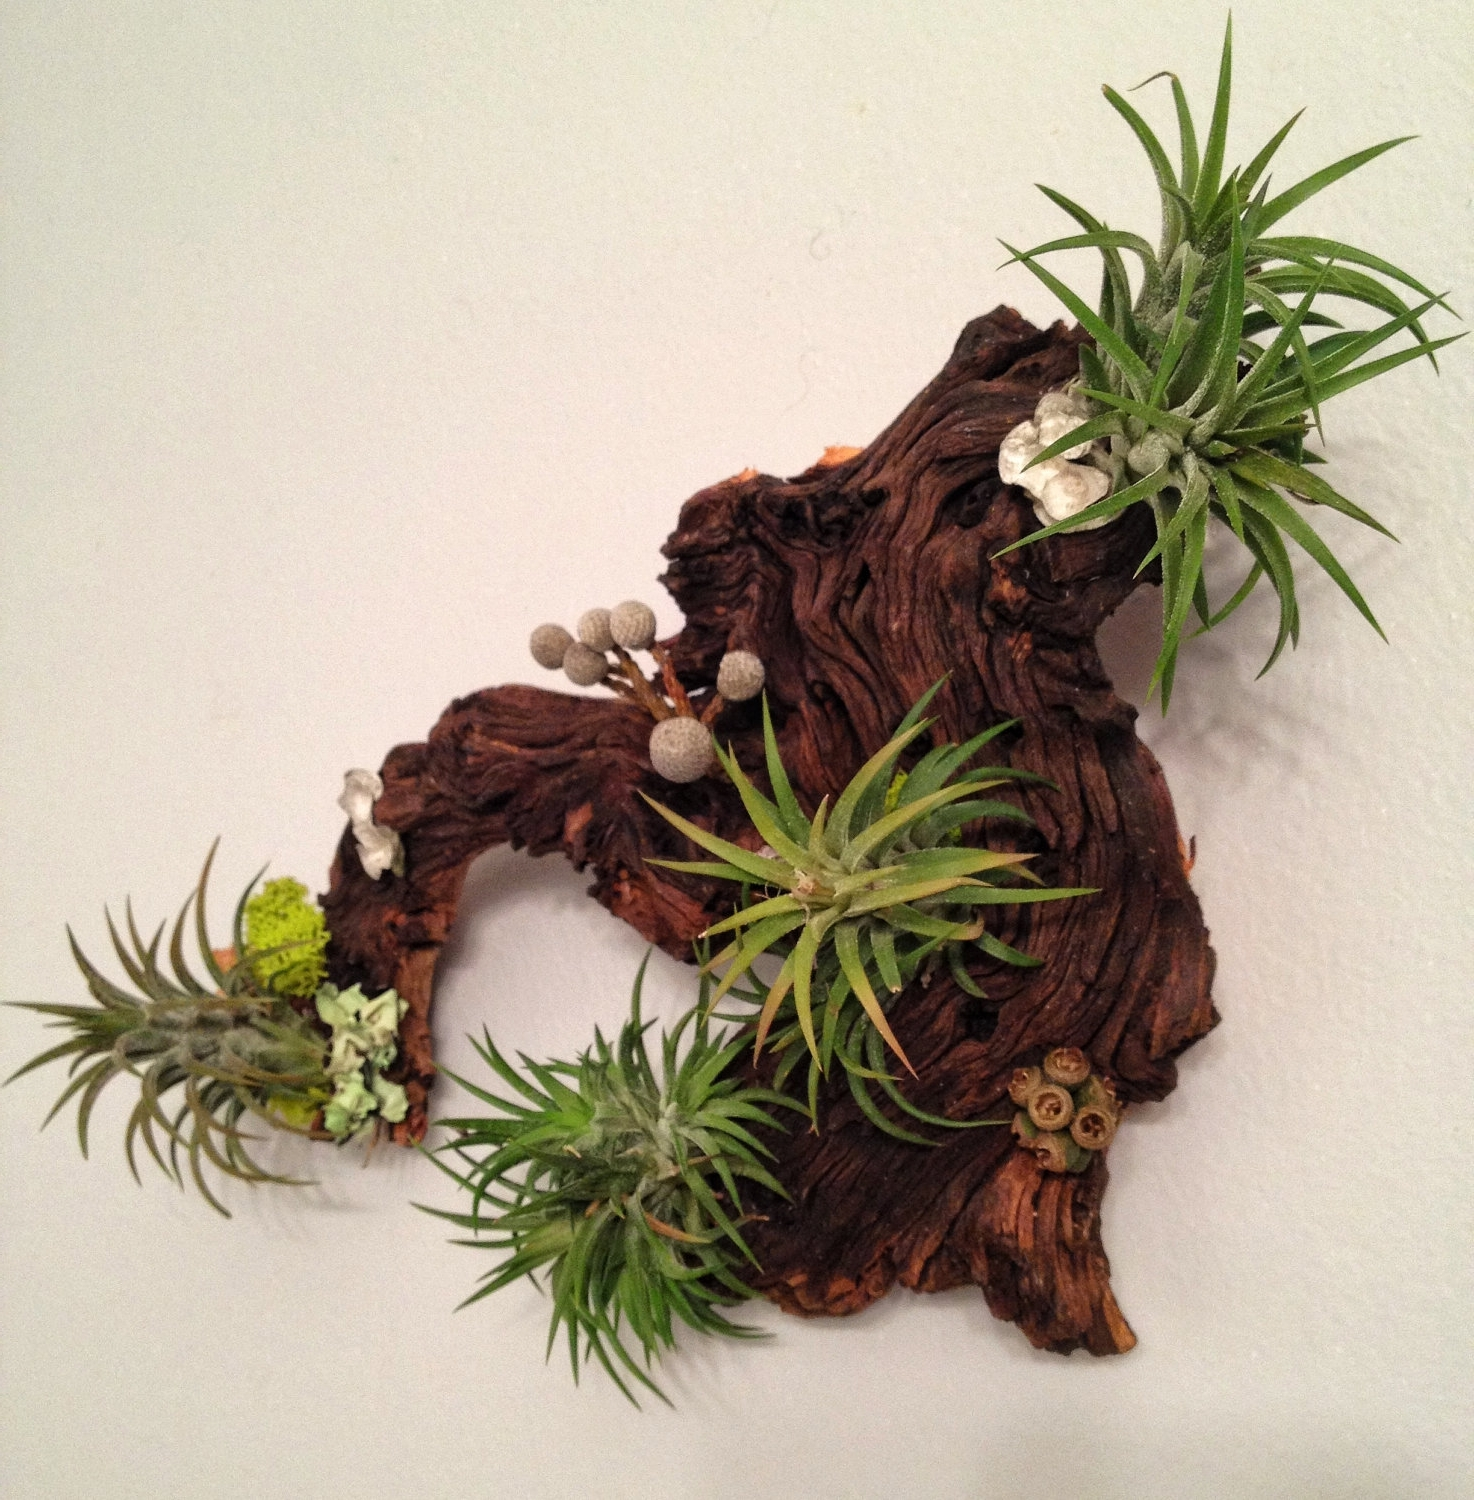 Air Plants And Moss Wall Garden – Living Wall Art – A Unique Within Newest Air Plant Wall Art (View 6 of 15)